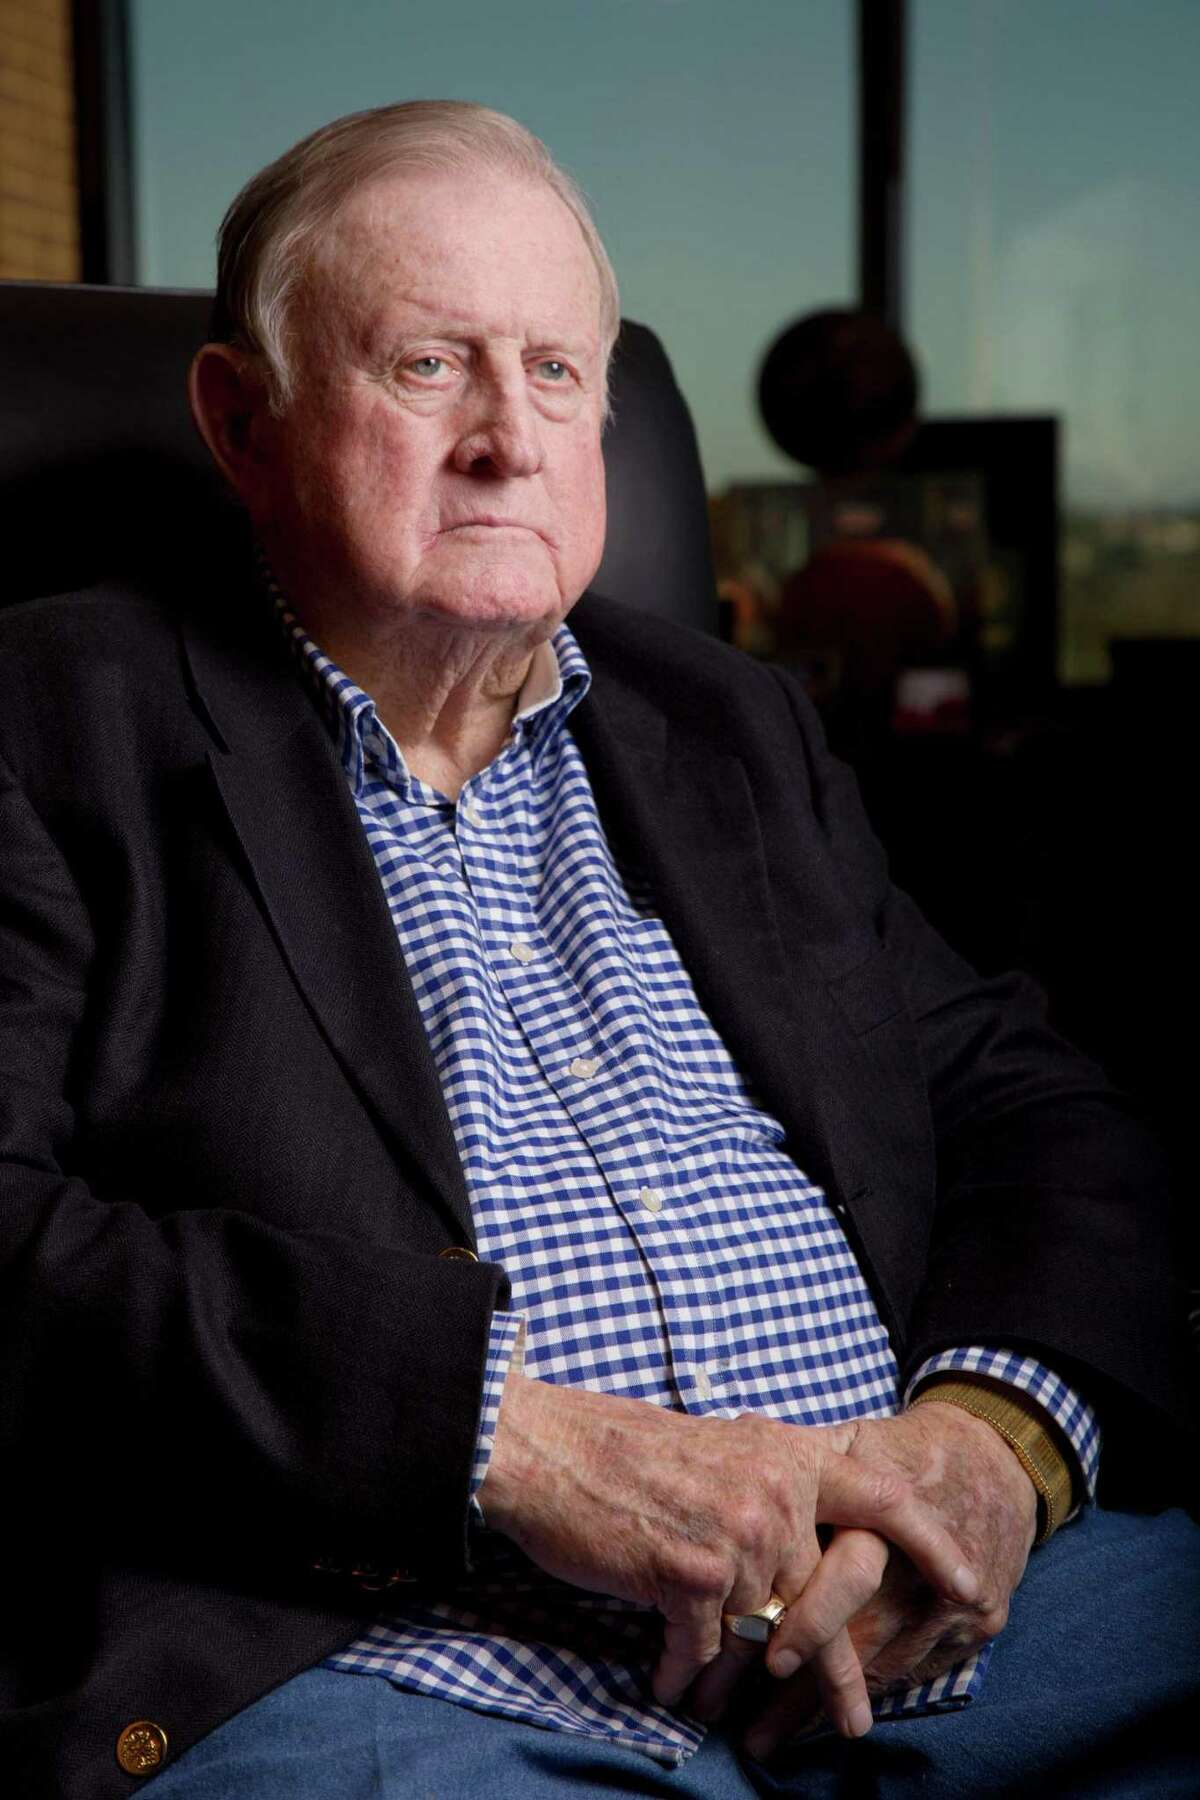 """San Antonio billionaire B.J. """"Red"""" McCombs is suing former executives of his McCombs Energy for alleging starting a competing company while still employed at McCombs Energy."""